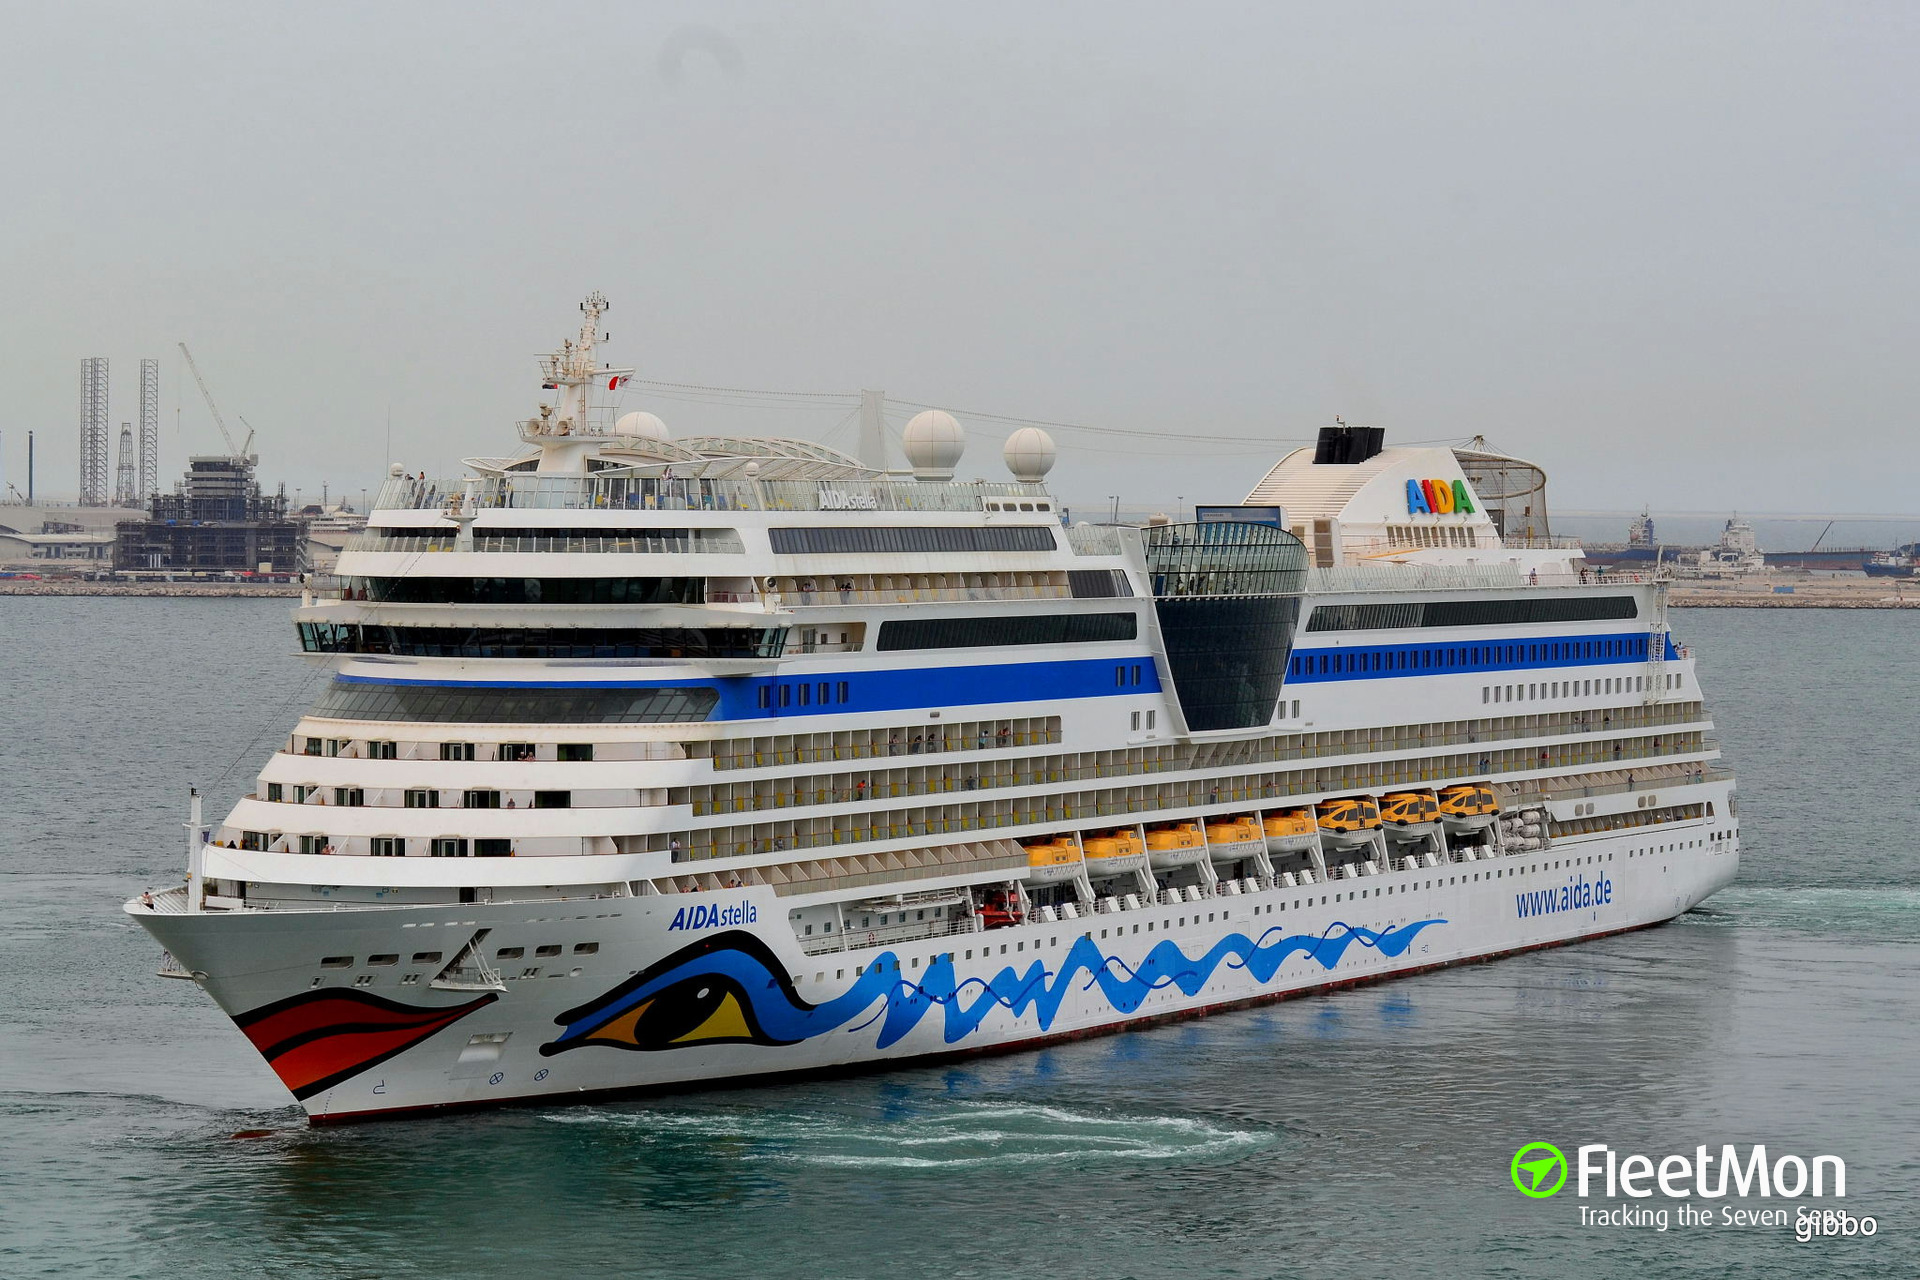 #10 of AIDA Cruises will be christened in Rostock, Germany!